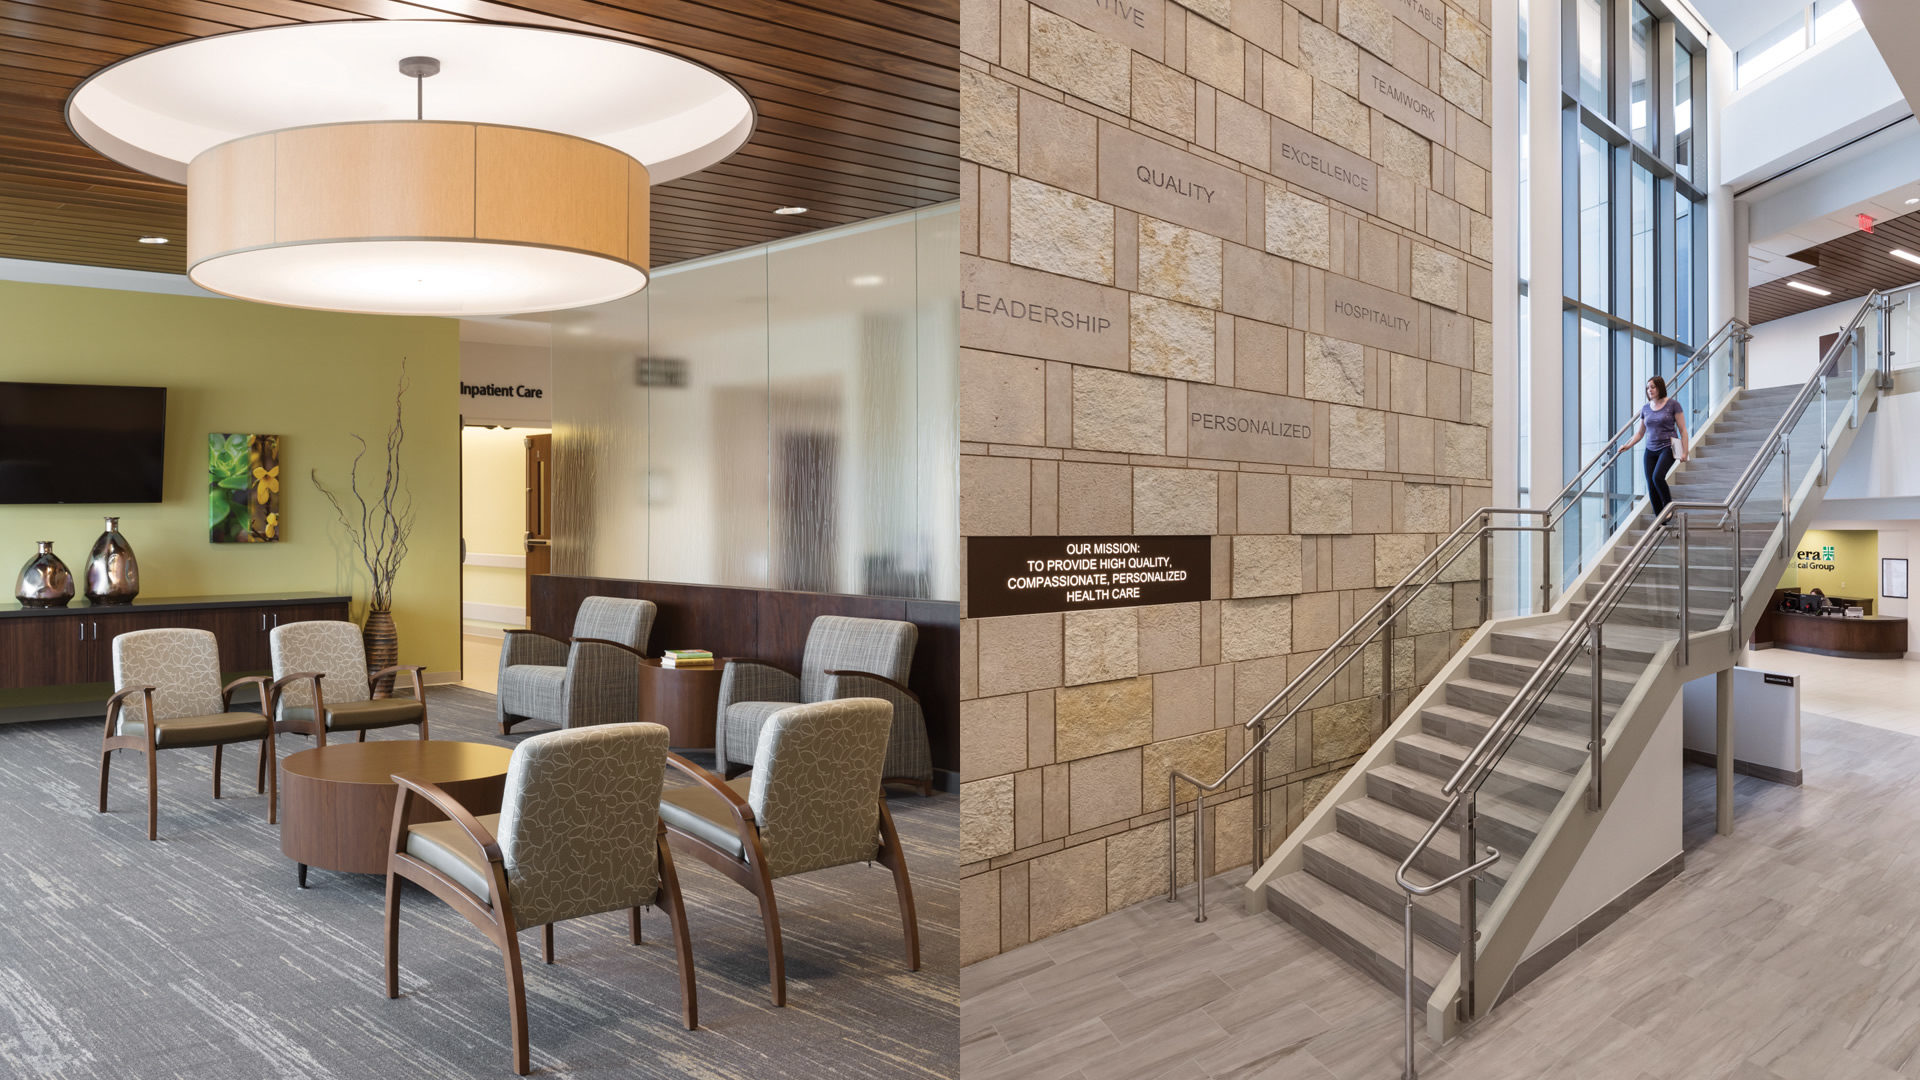 Brookings Hospital Addition and Renovation Interior Inpatient Care Waiting Room and Grand Staircase Engraved Brick Wall